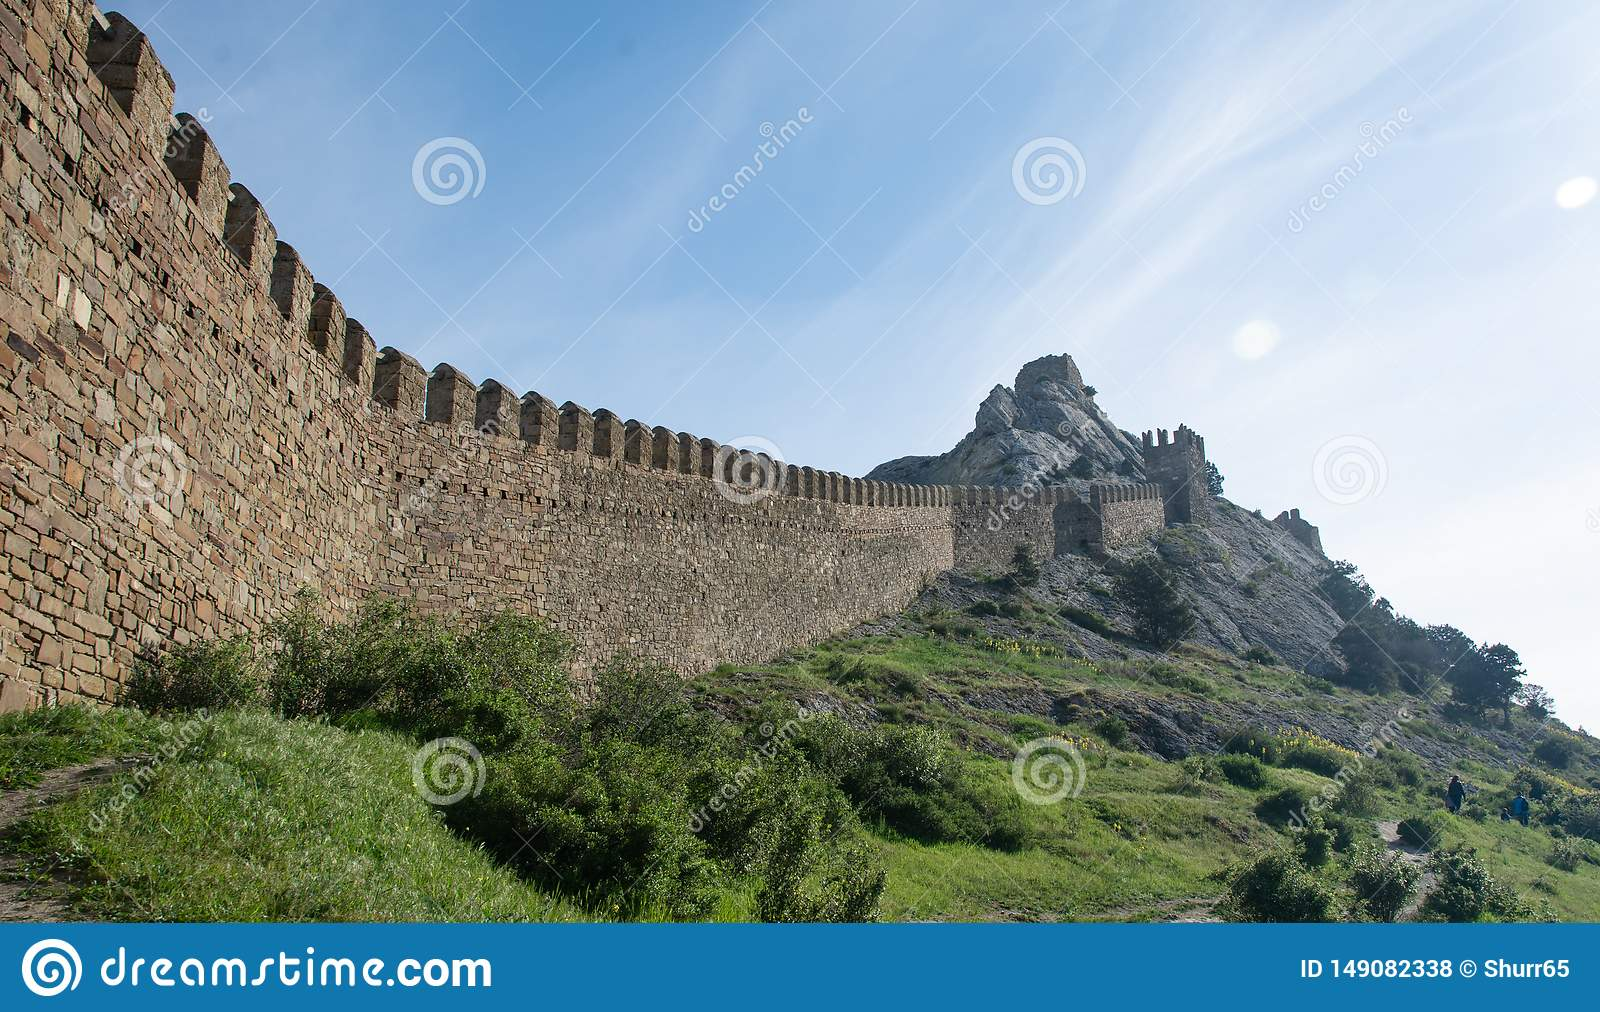 The Great Genoese Wall in Crimea.